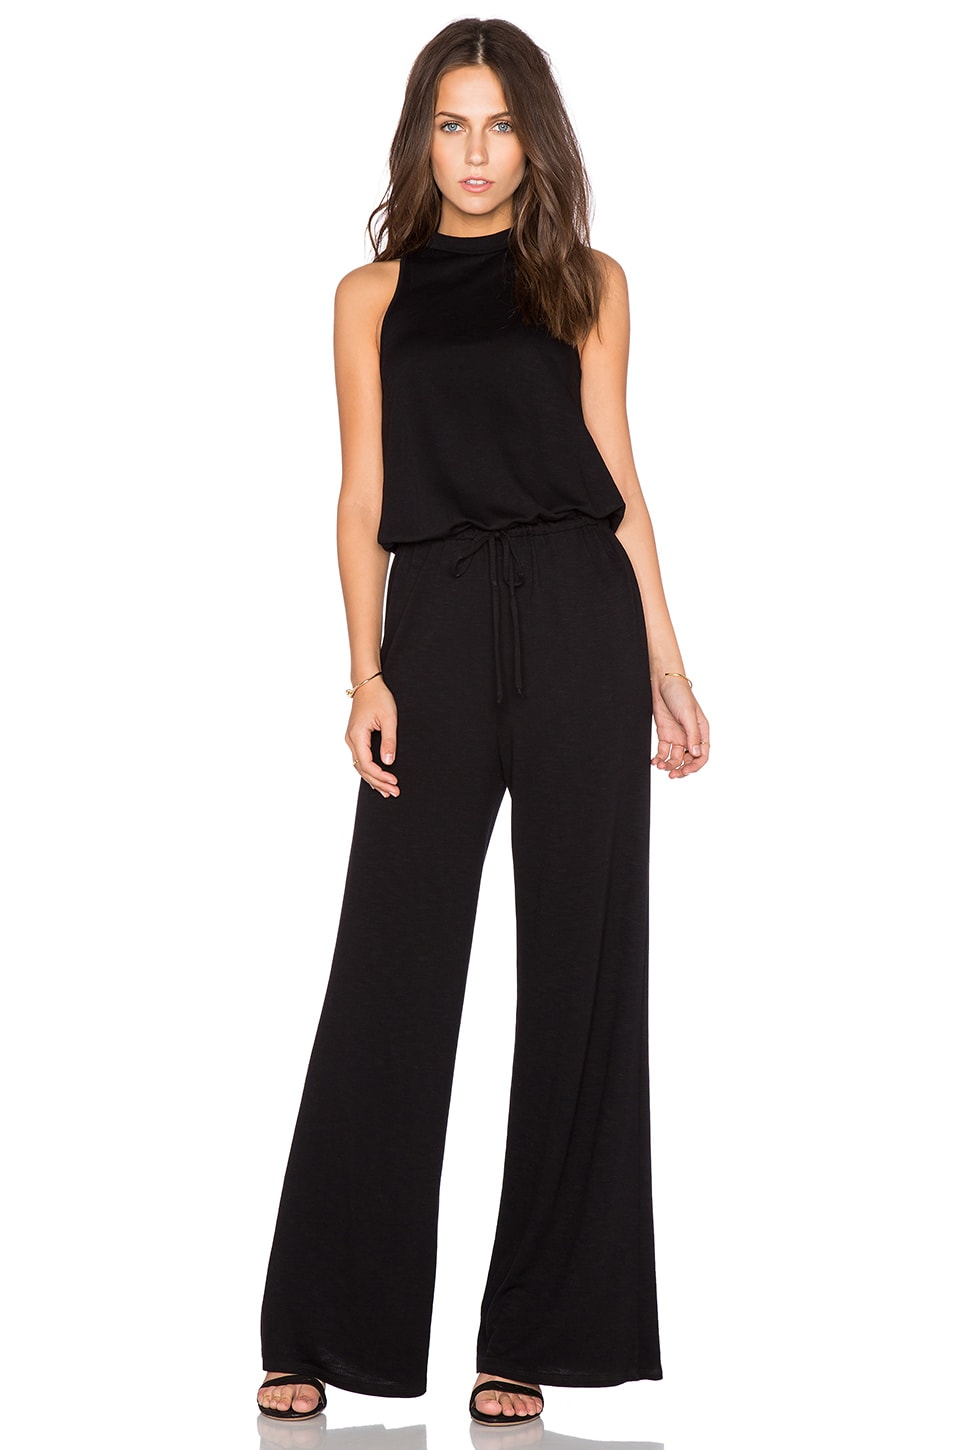 Lanston Turtleneck Jumpsuit in Black